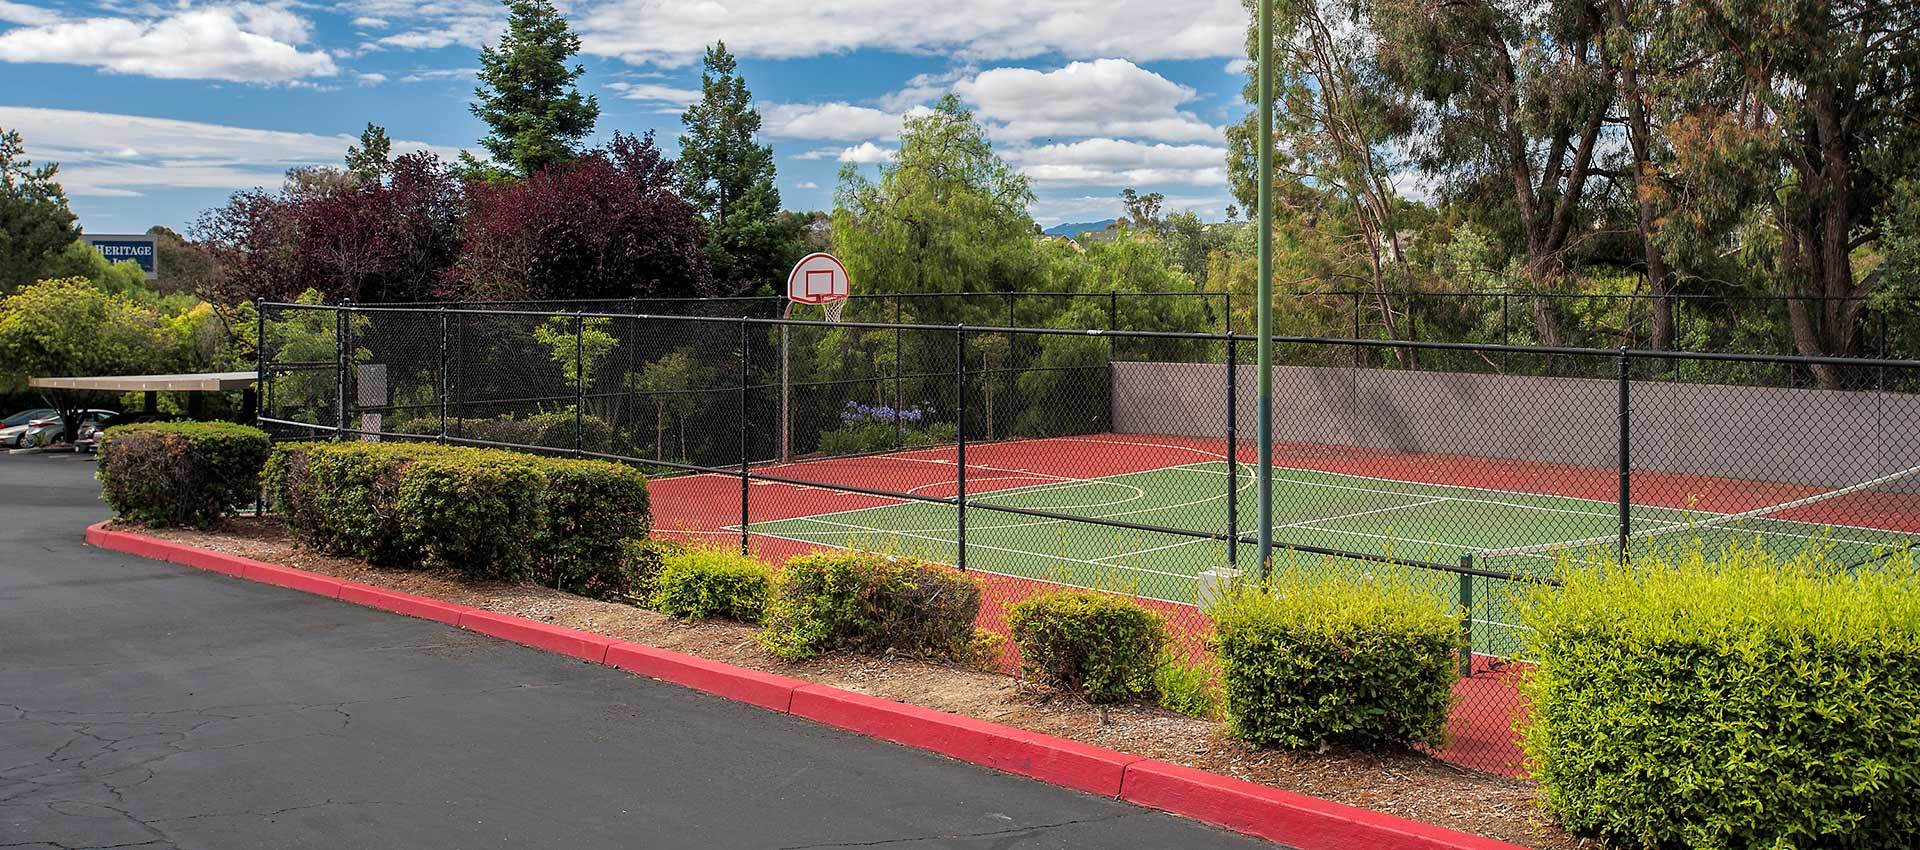 Sport Court at Sterling Heights Apartment Homes in Benicia